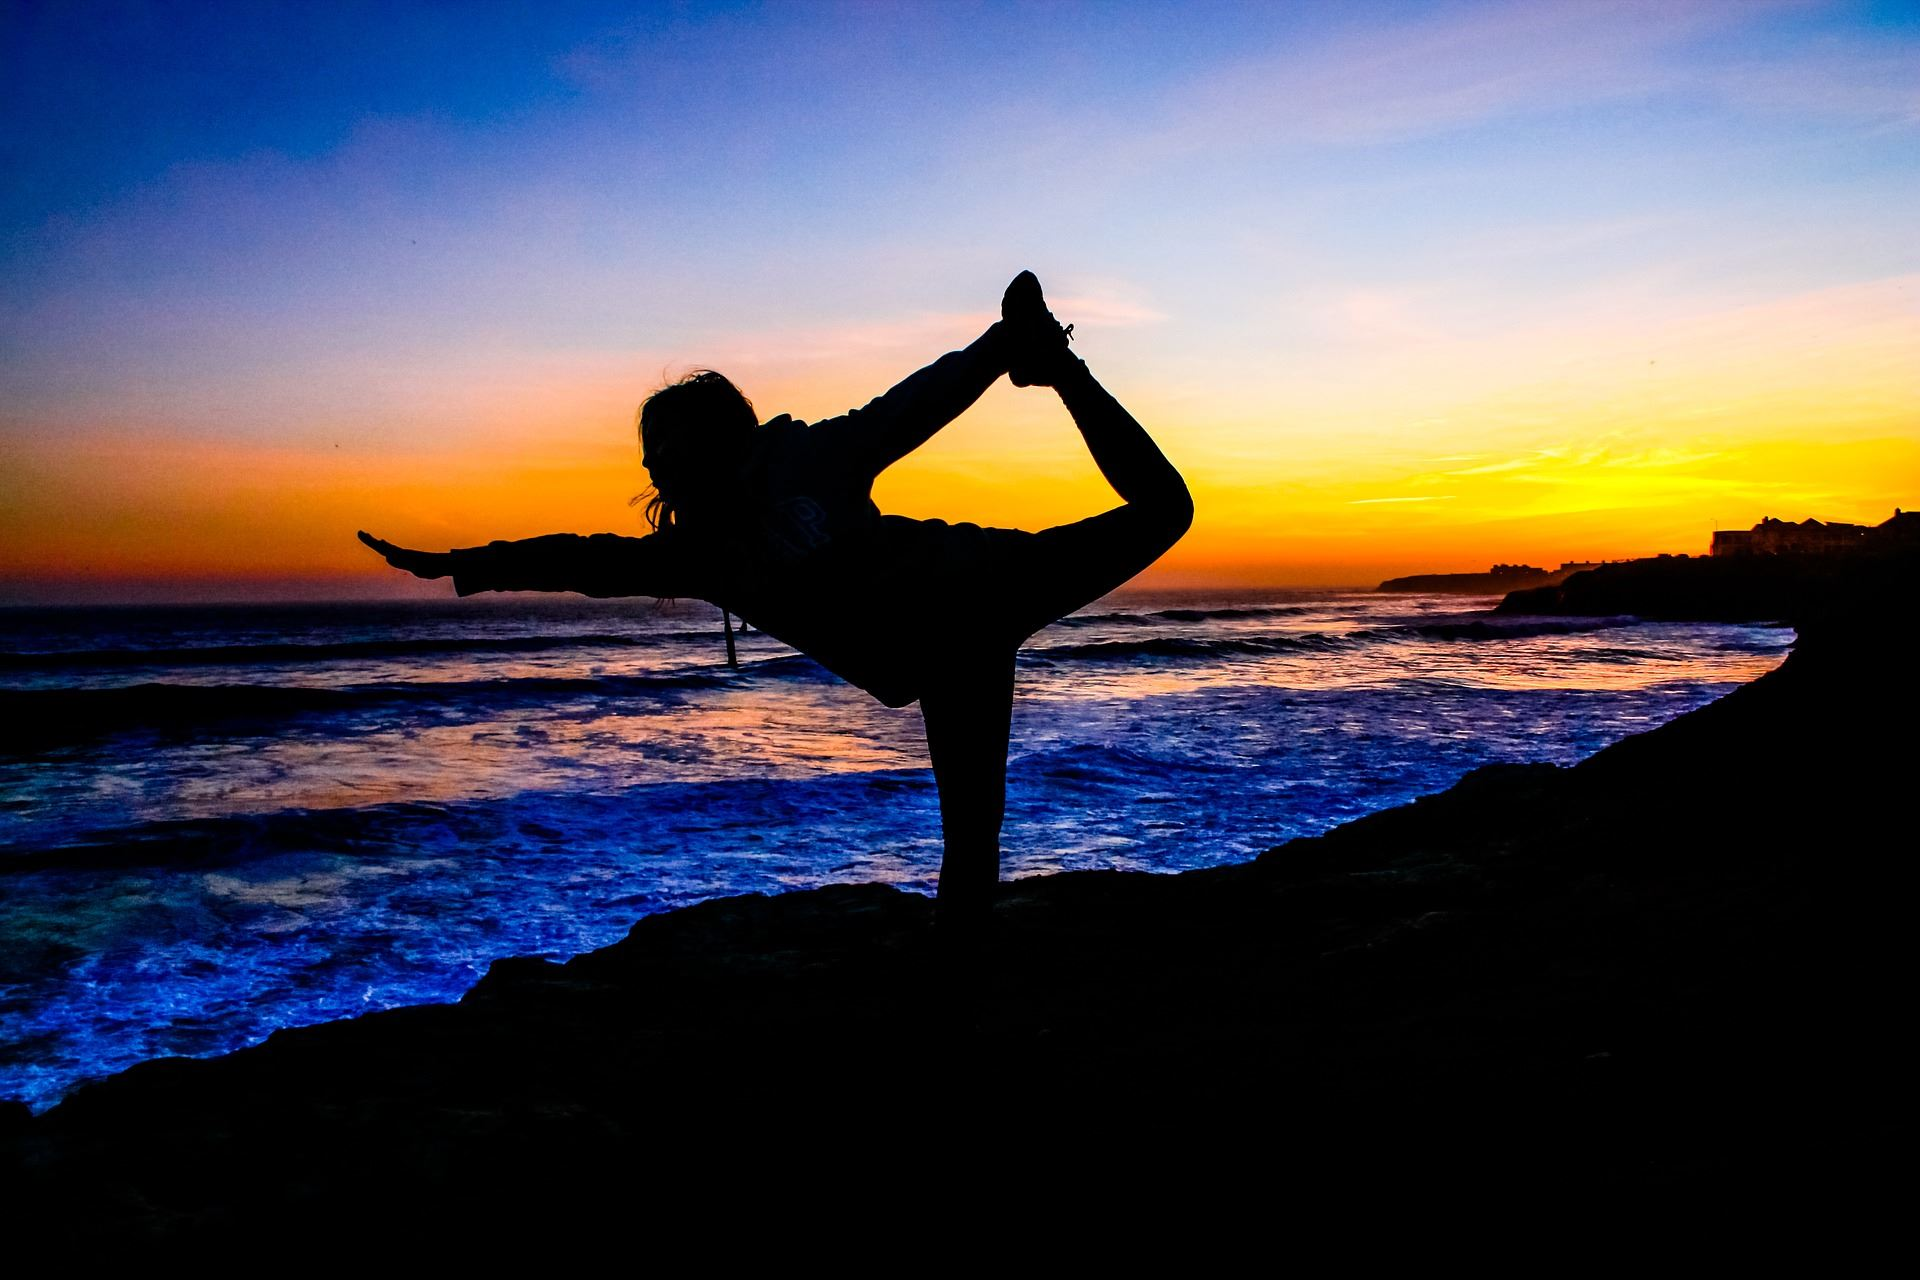 Woman, silhouetted, doing a yoga dancer pose, sunset and reflection on waves in background